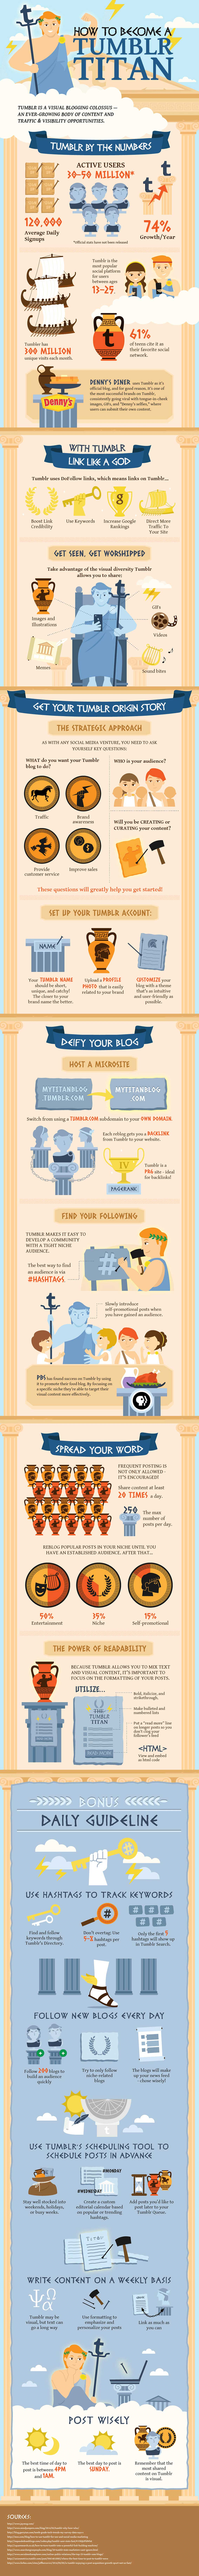 How to Become A Tumblr Titan Infographic